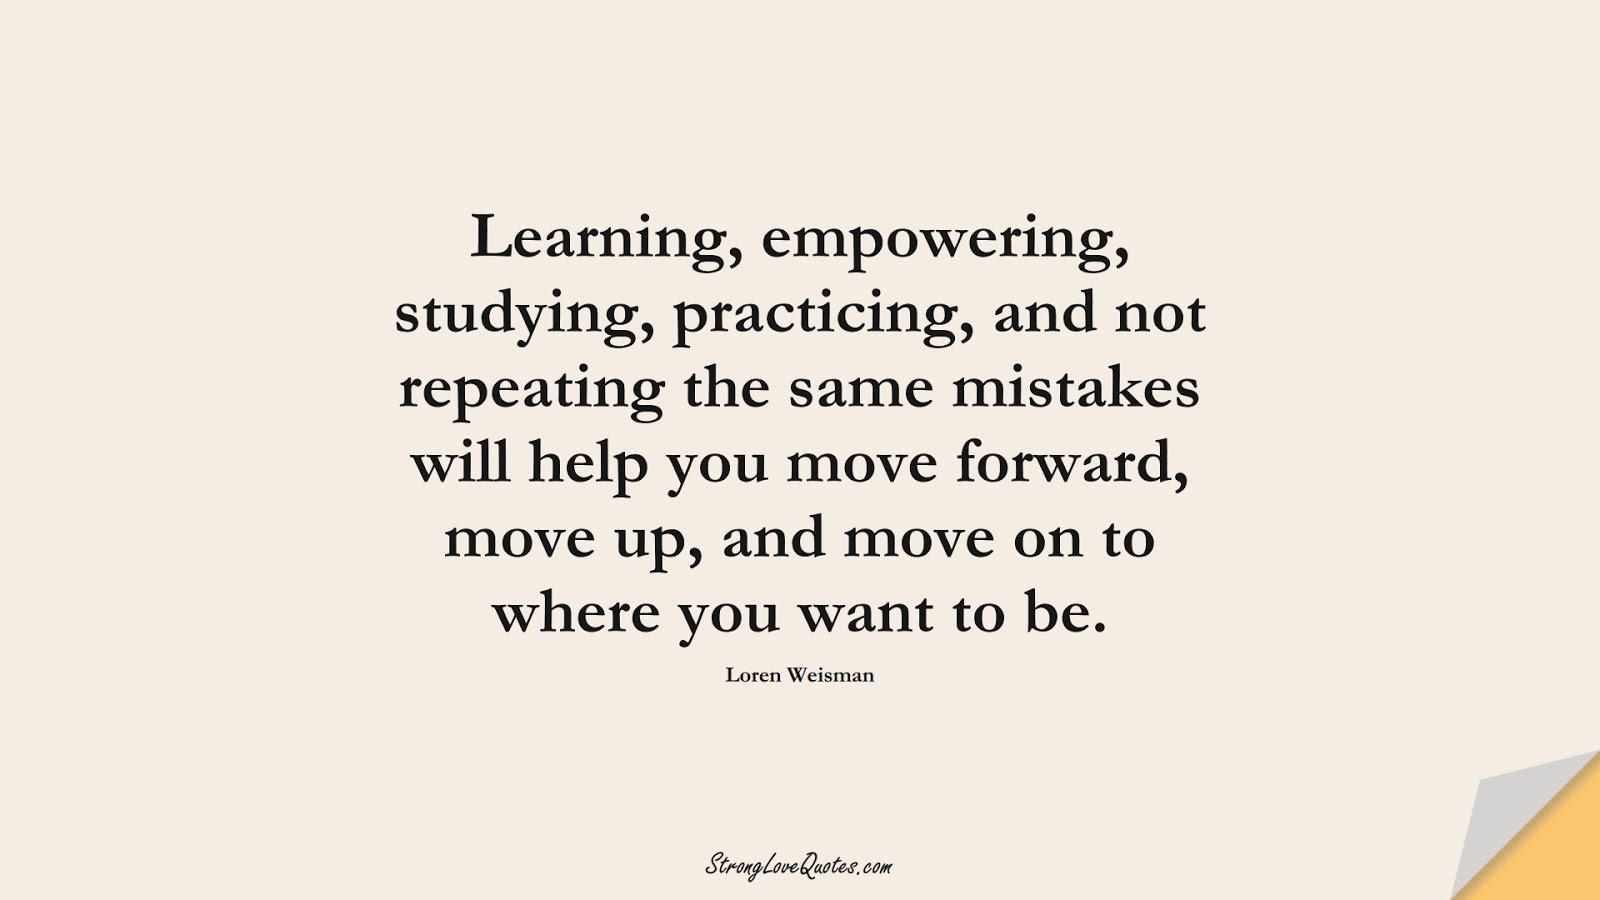 Learning, empowering, studying, practicing, and not repeating the same mistakes will help you move forward, move up, and move on to where you want to be. (Loren Weisman);  #LearningQuotes